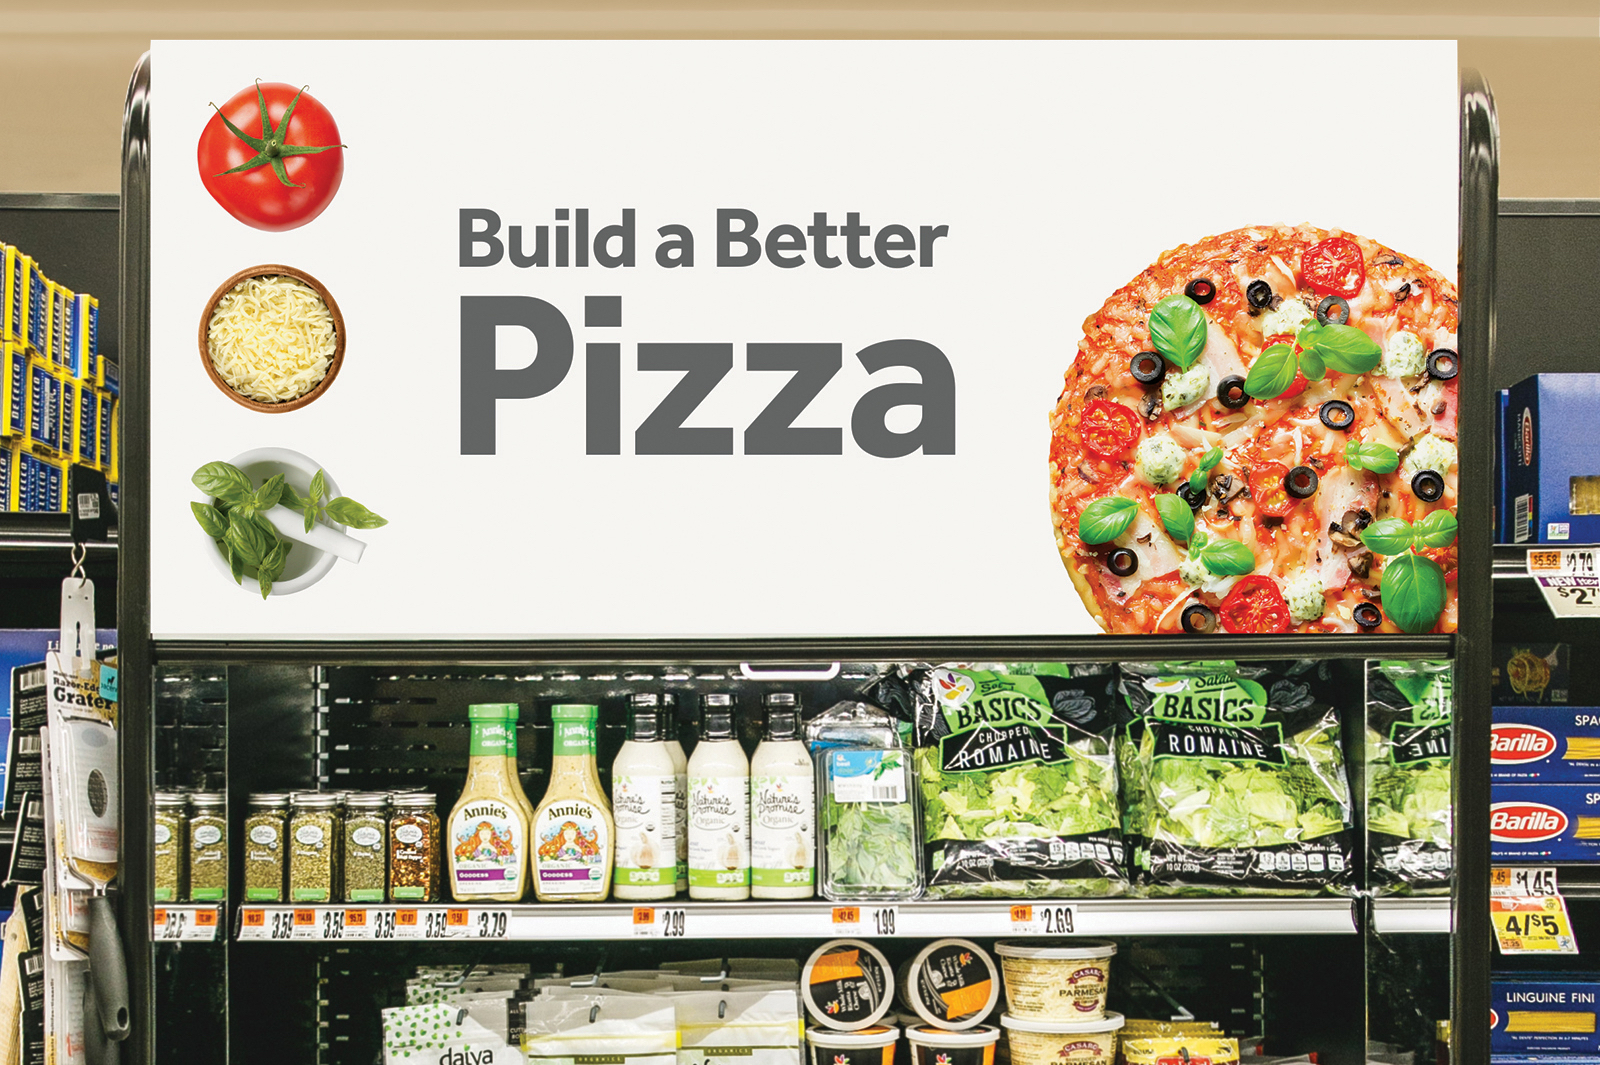 Stop & Shop build a better pizza sign